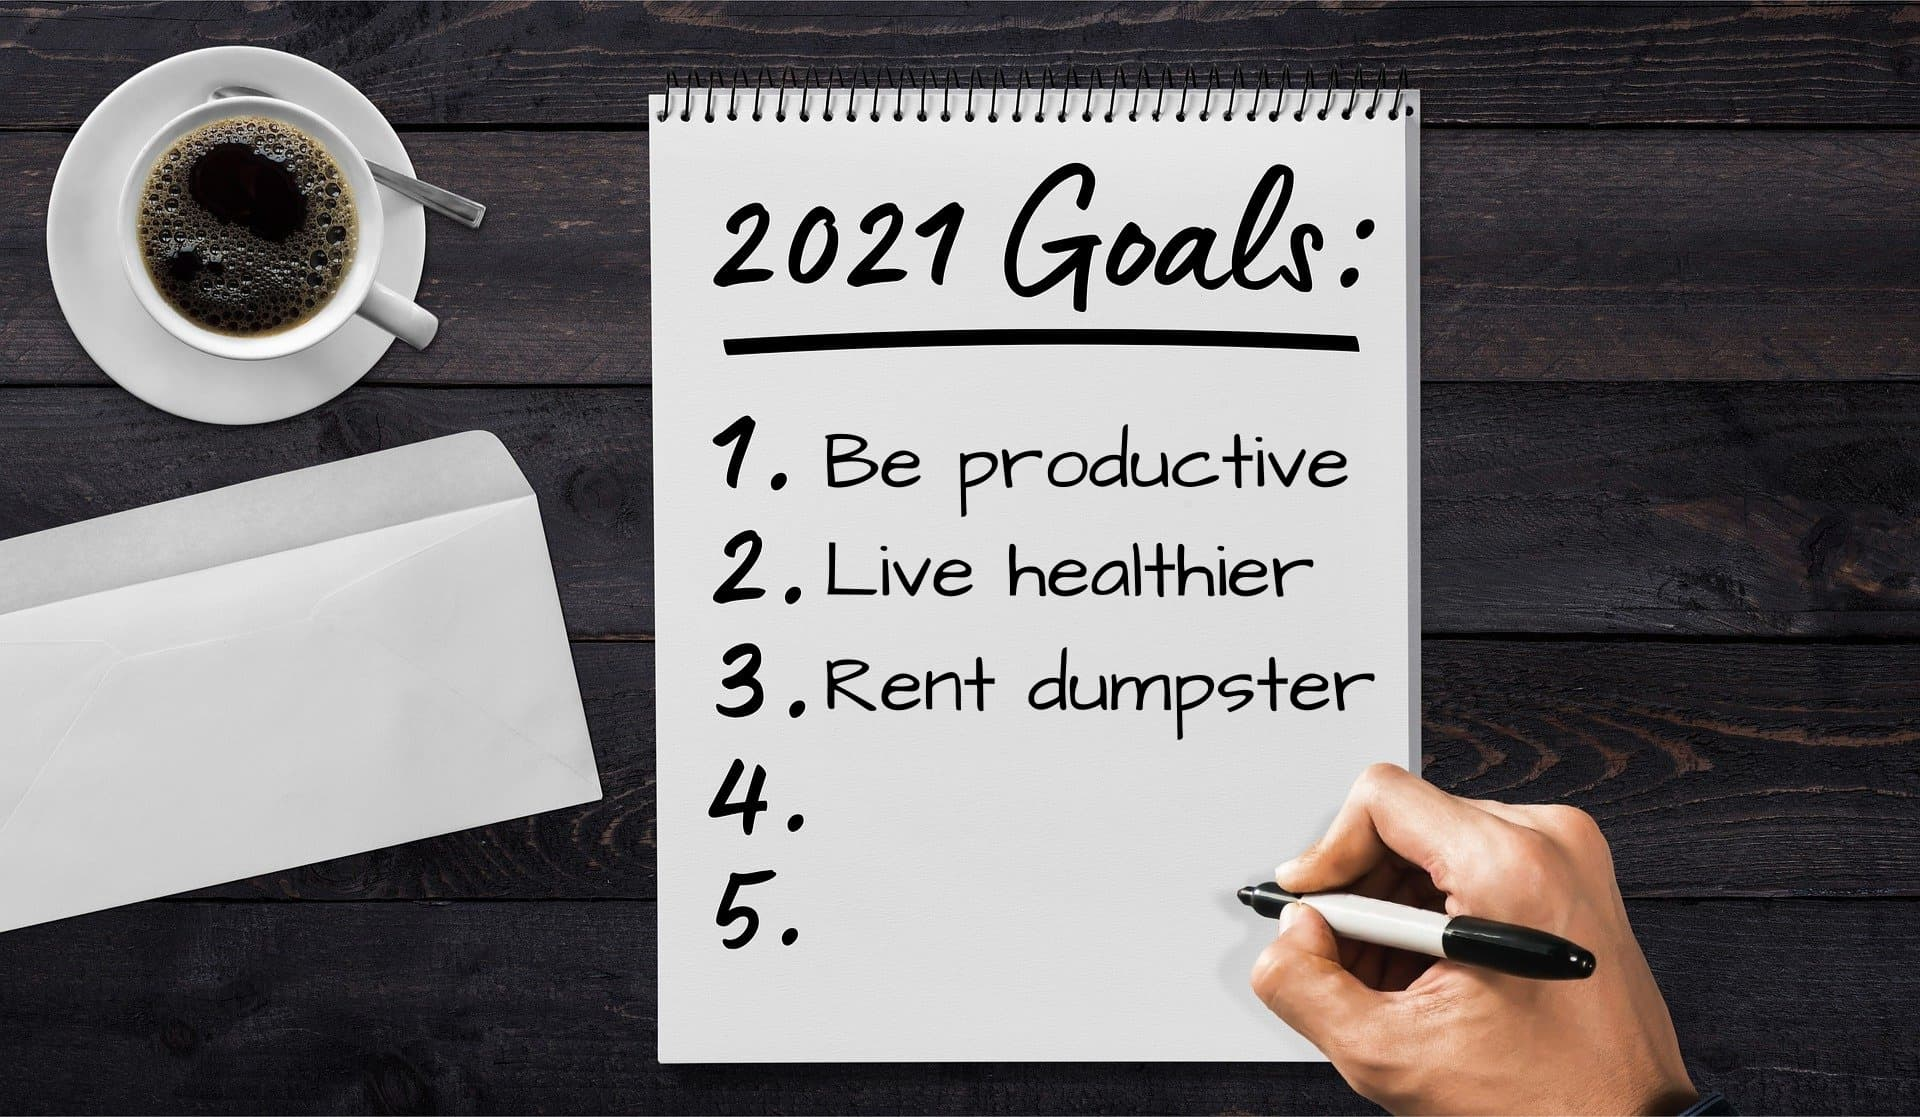 Dumpster rental as a new years goal